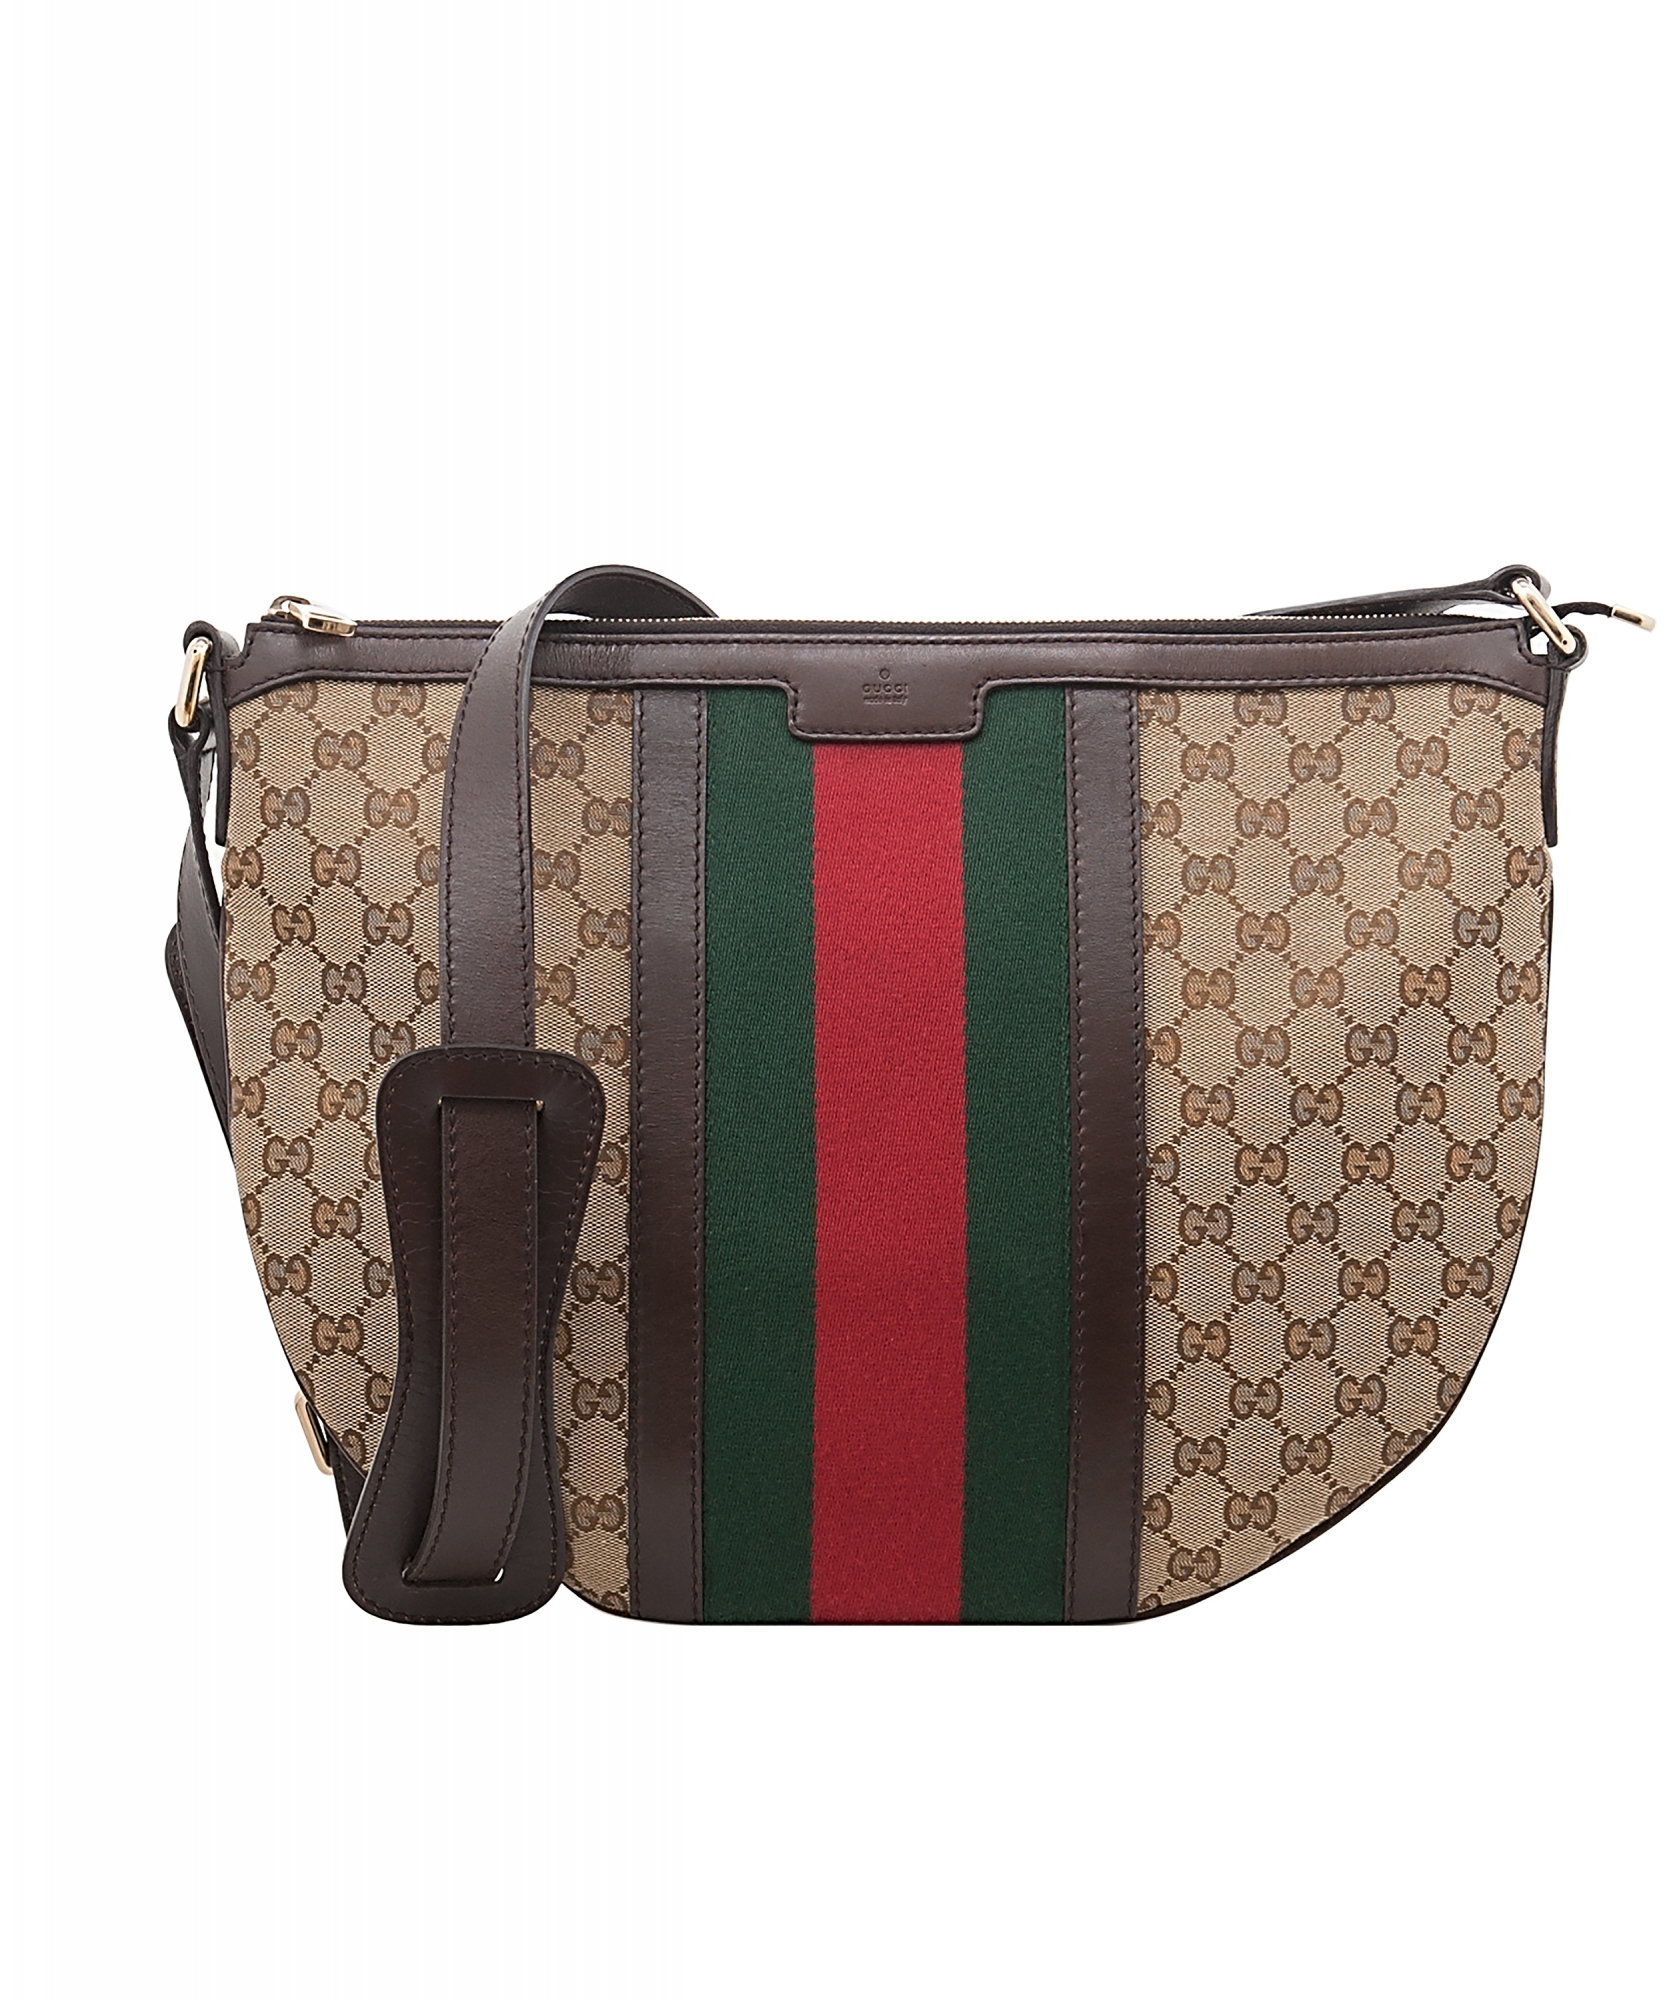 5c744b159cd1cd Gucci Vintage Web GG Canvas Crossbody Bag | La Doyenne